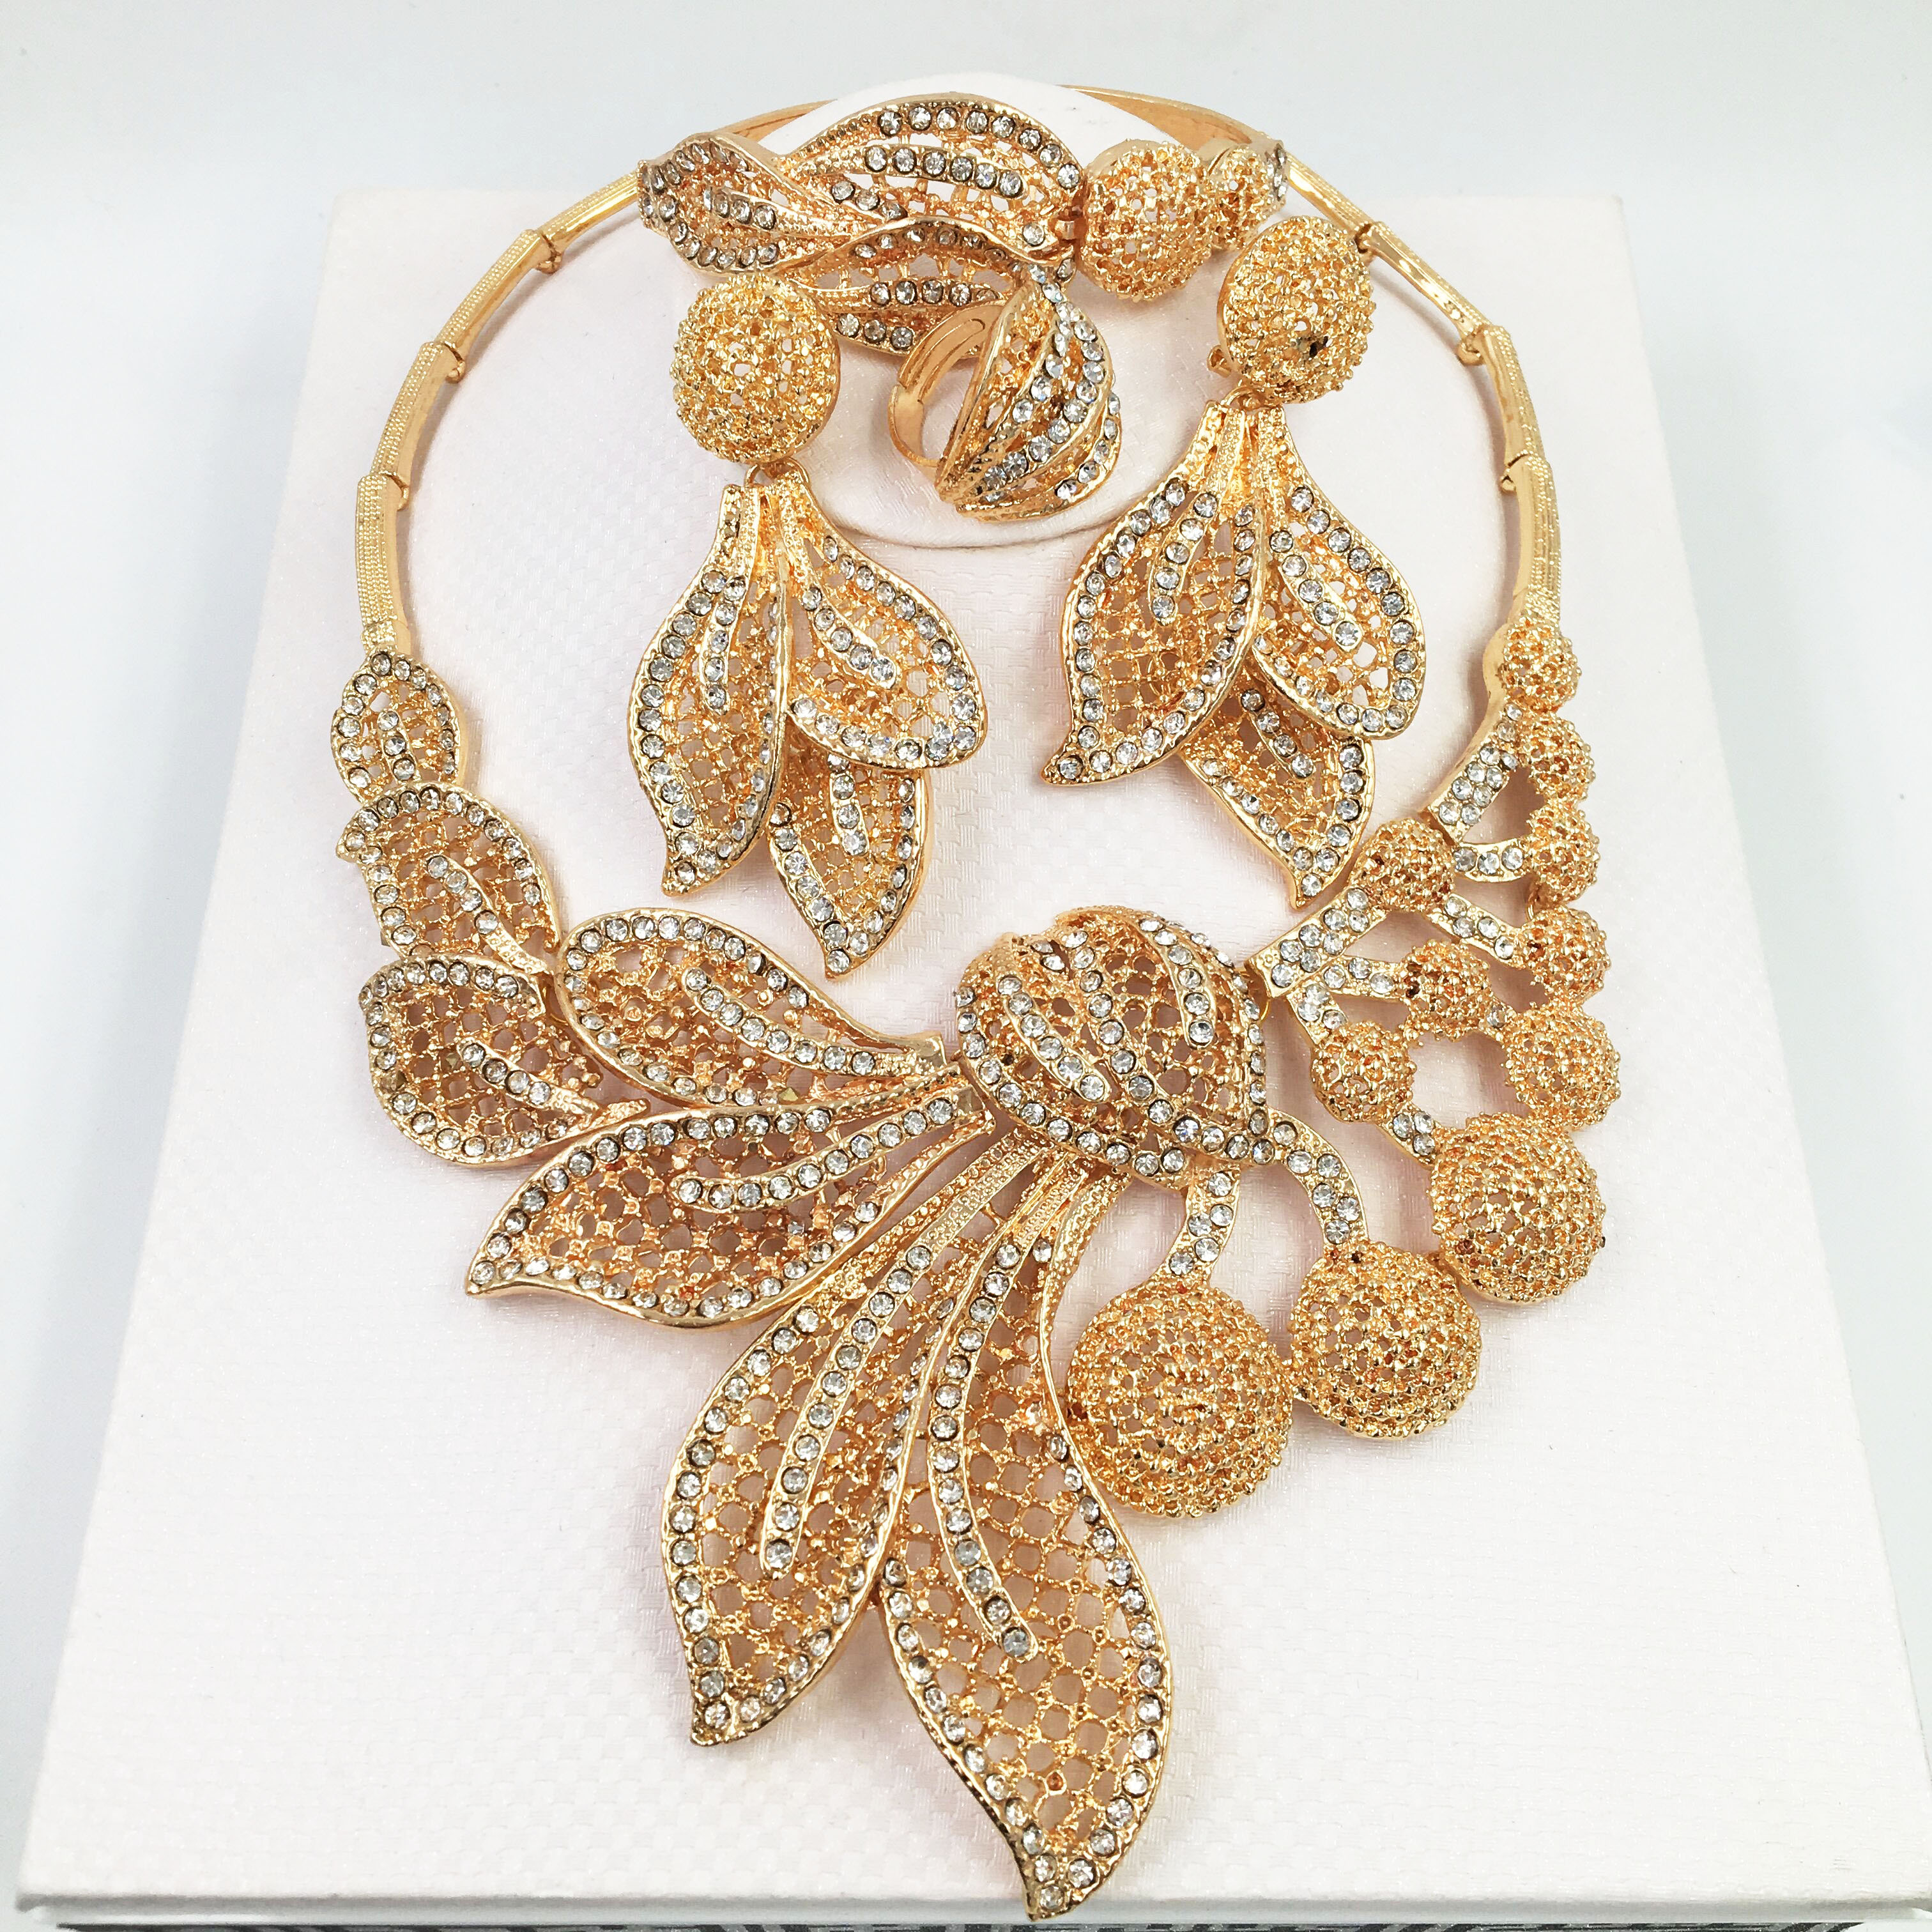 HOT Fashion wedding Dubai Africa <font><b>Nigeria</b></font> African <font><b>Jewelry</b></font> <font><b>set</b></font> gold-color necklace Earrings romantic woman Bridal <font><b>Jewelry</b></font> <font><b>Sets</b></font> image